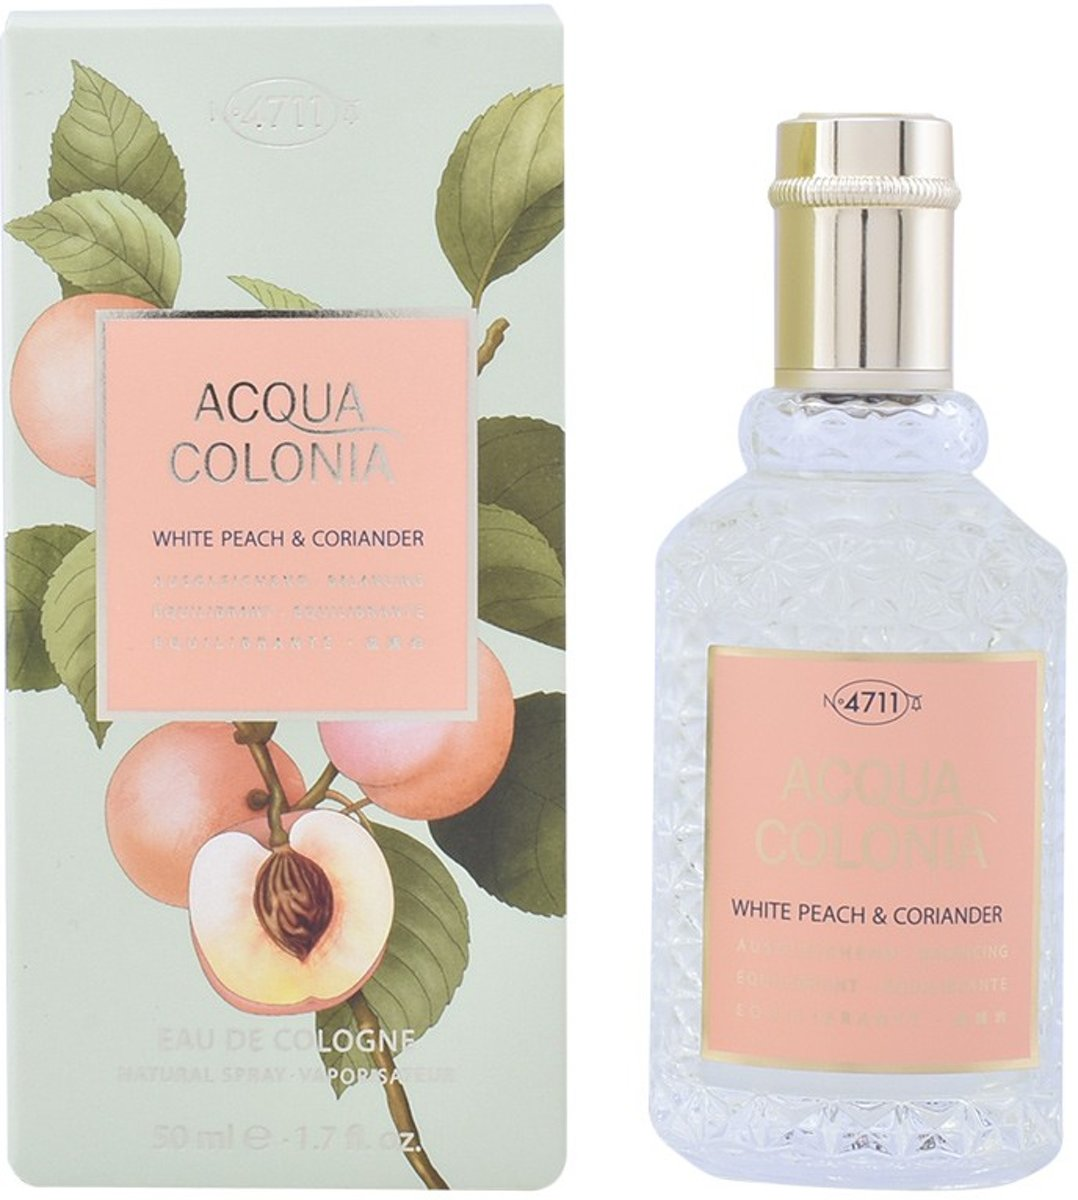 MULTI BUNDEL 2 stuks ACQUA colonia WHITE PEACH & CORIANDER eau de cologne spray 50 ml